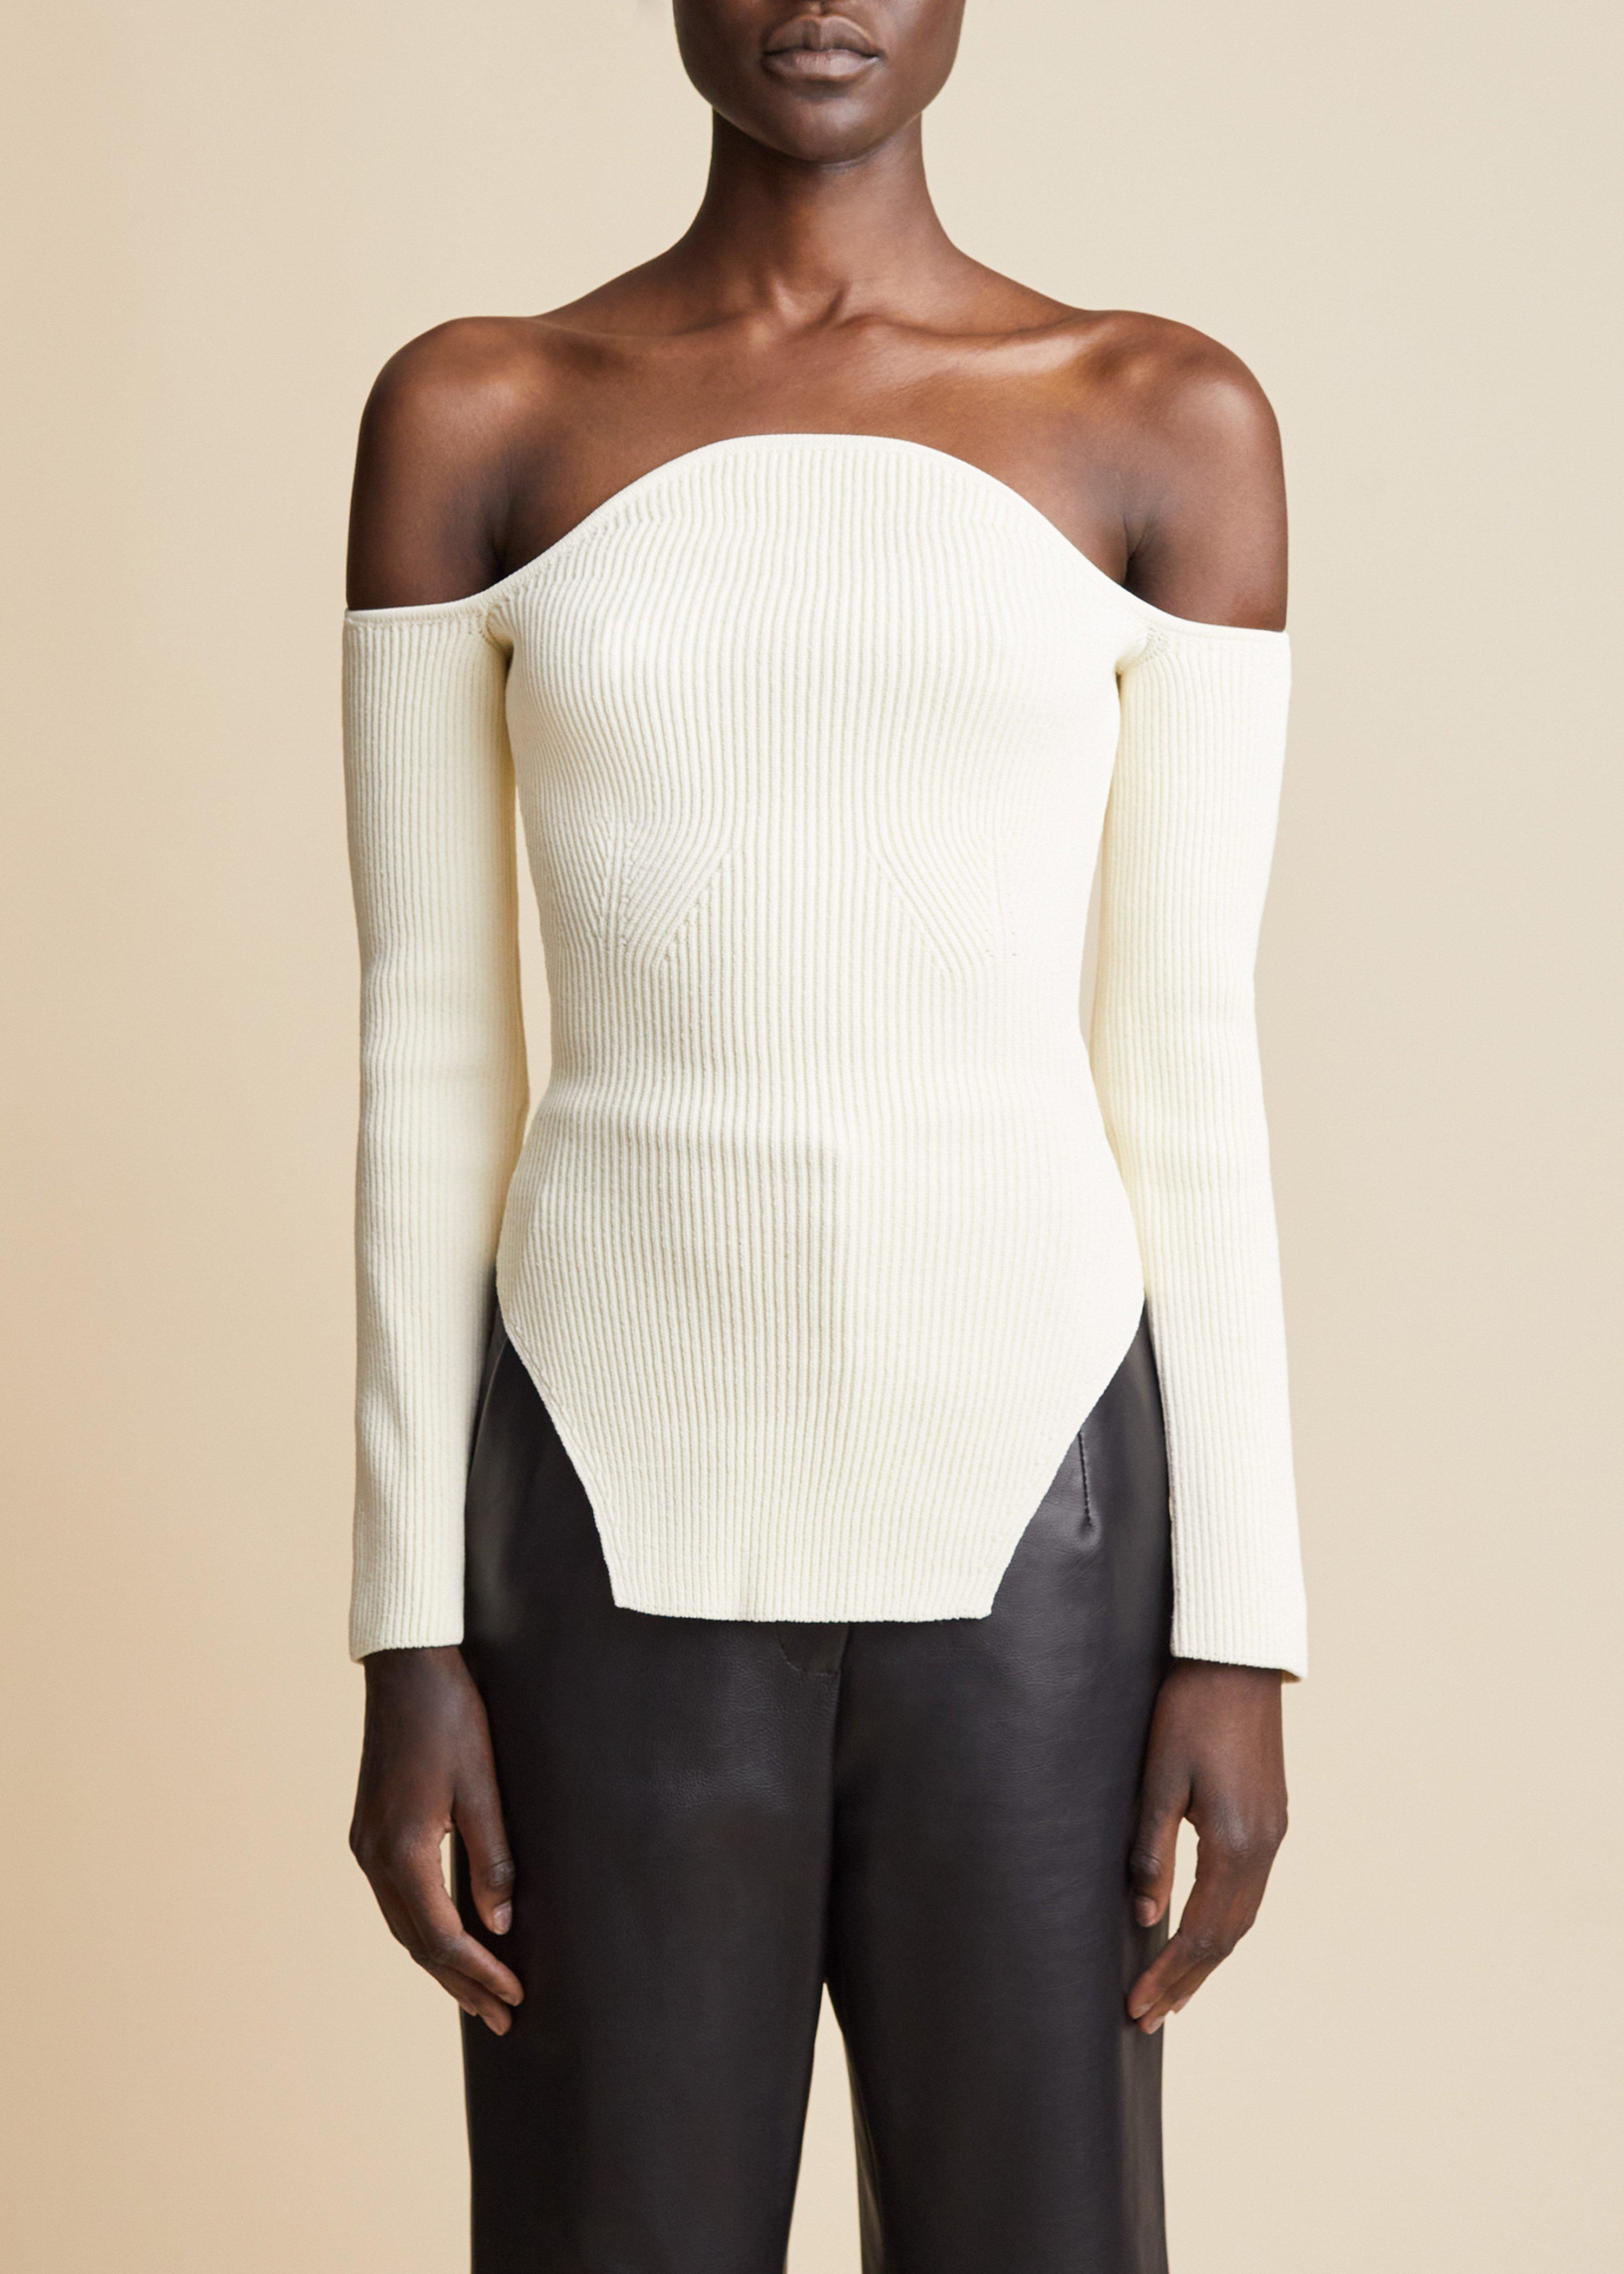 The Maria Top in Ivory